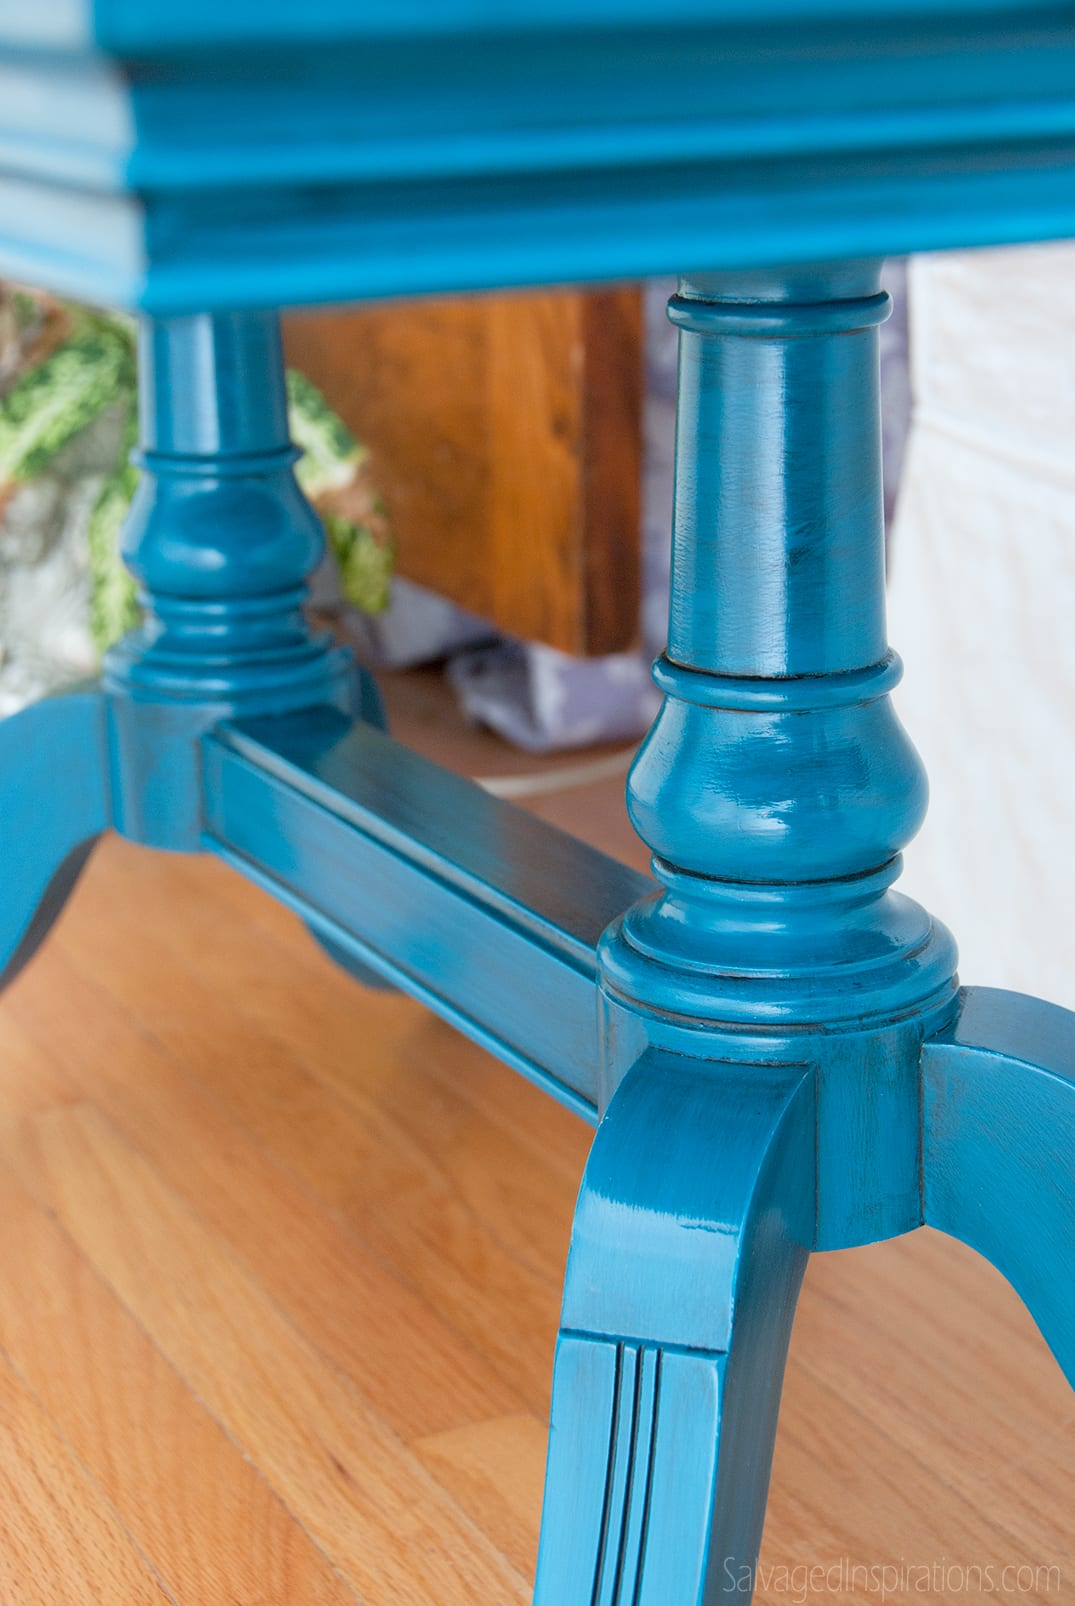 Deilcraft-Table-Legs---Turquoise-Glazed